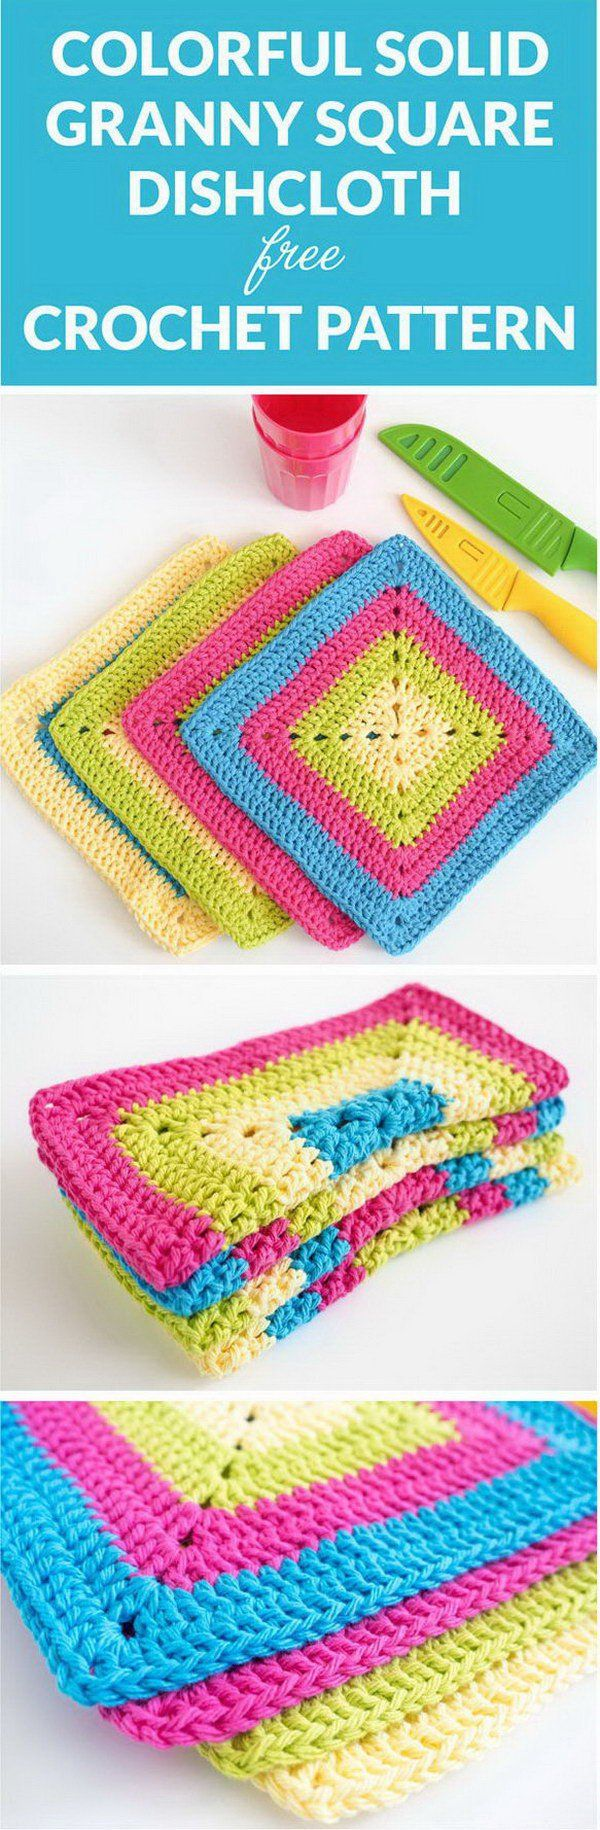 Colorful Solid Granny Square Dishcloth. | Knit and Crochet ...